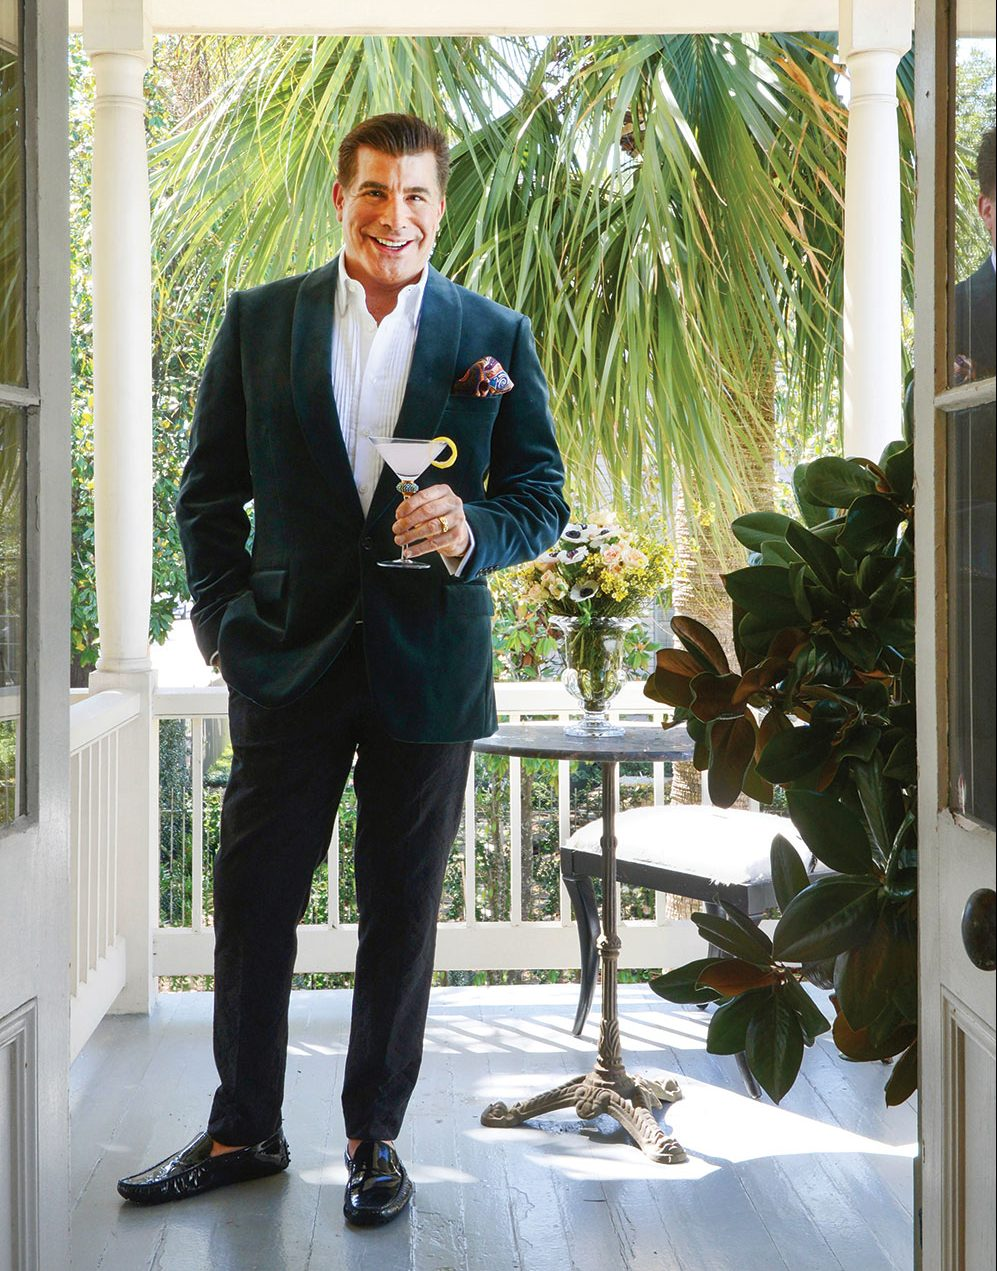 actor bryan batt stands on his covered porch, wearing a suit and holding a cocktail in a martini glass